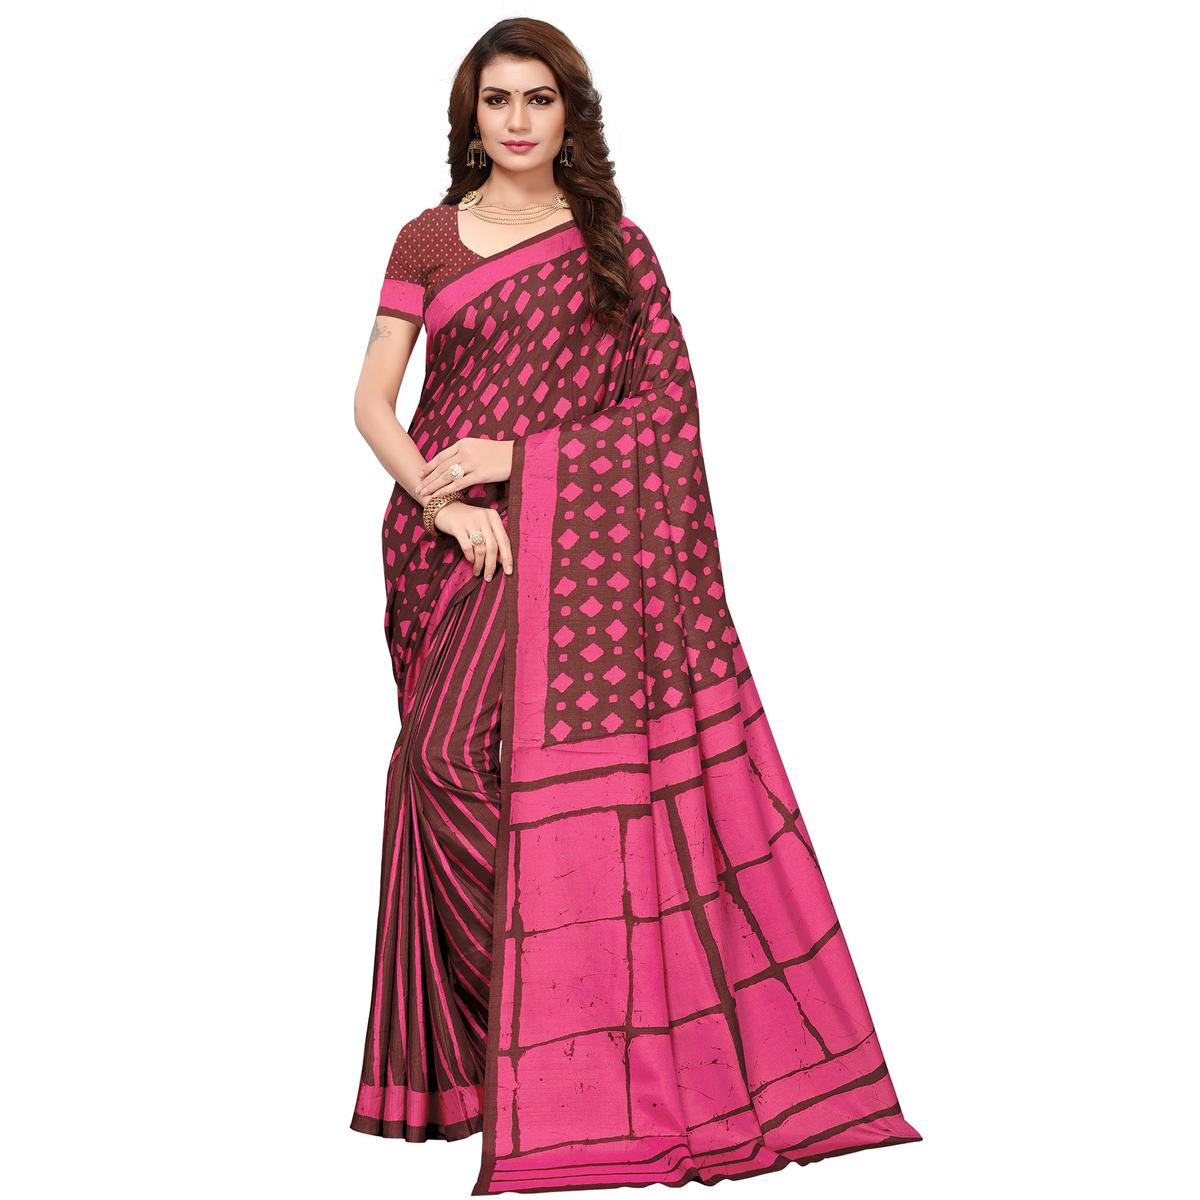 Charming Brown-Pink Colored Casual Printed Silk Saree